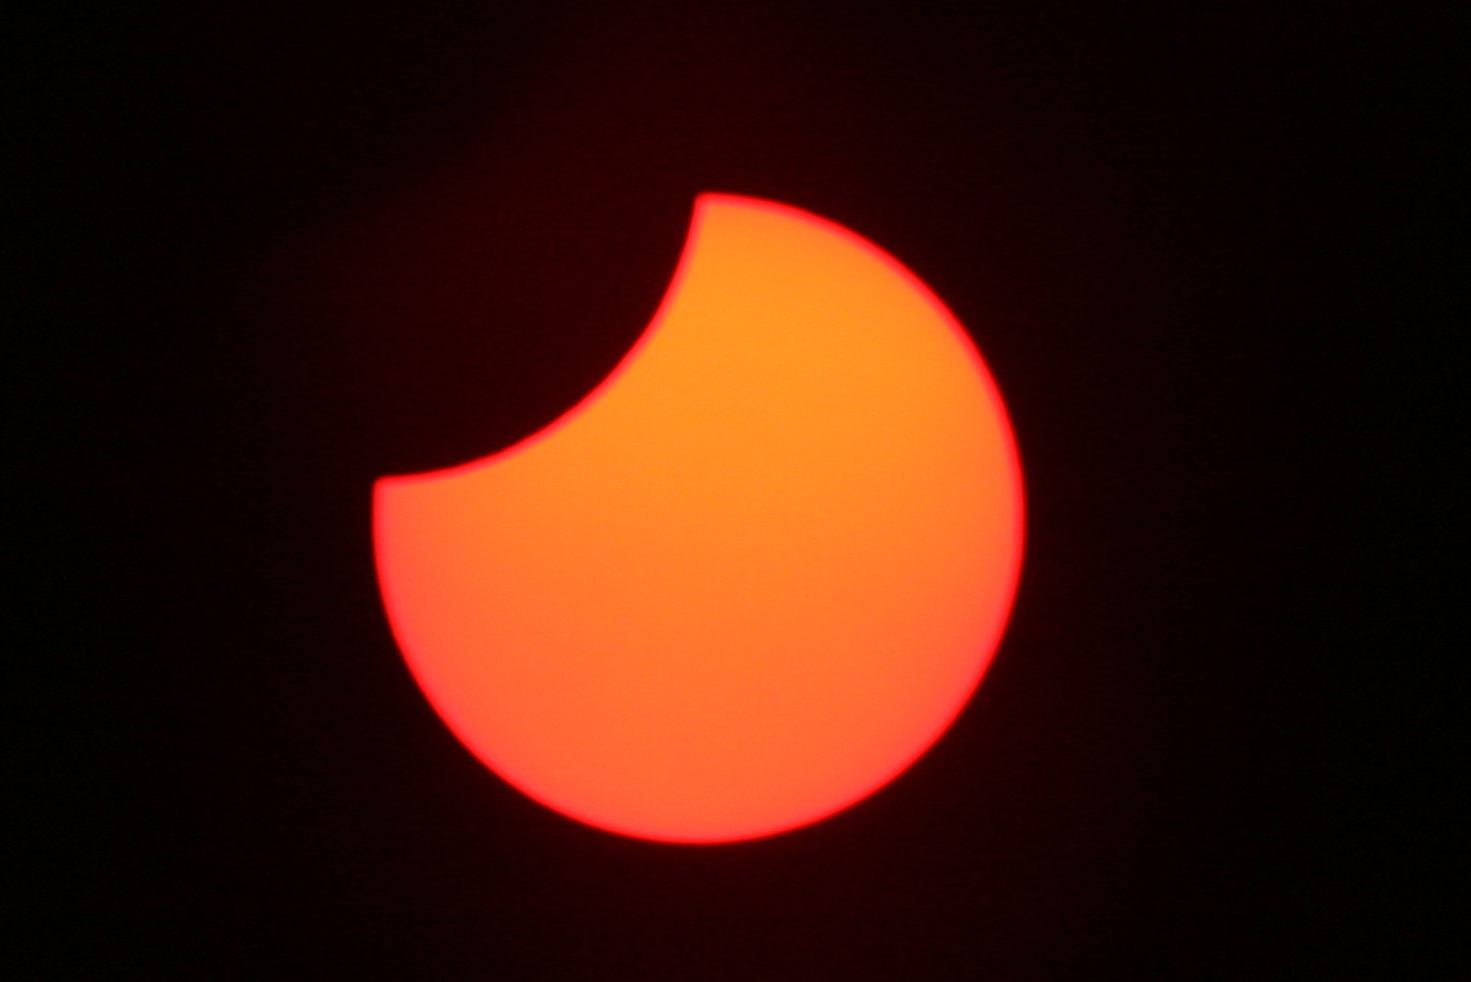 partial eclipse myanmar defintition of partial eclipse at